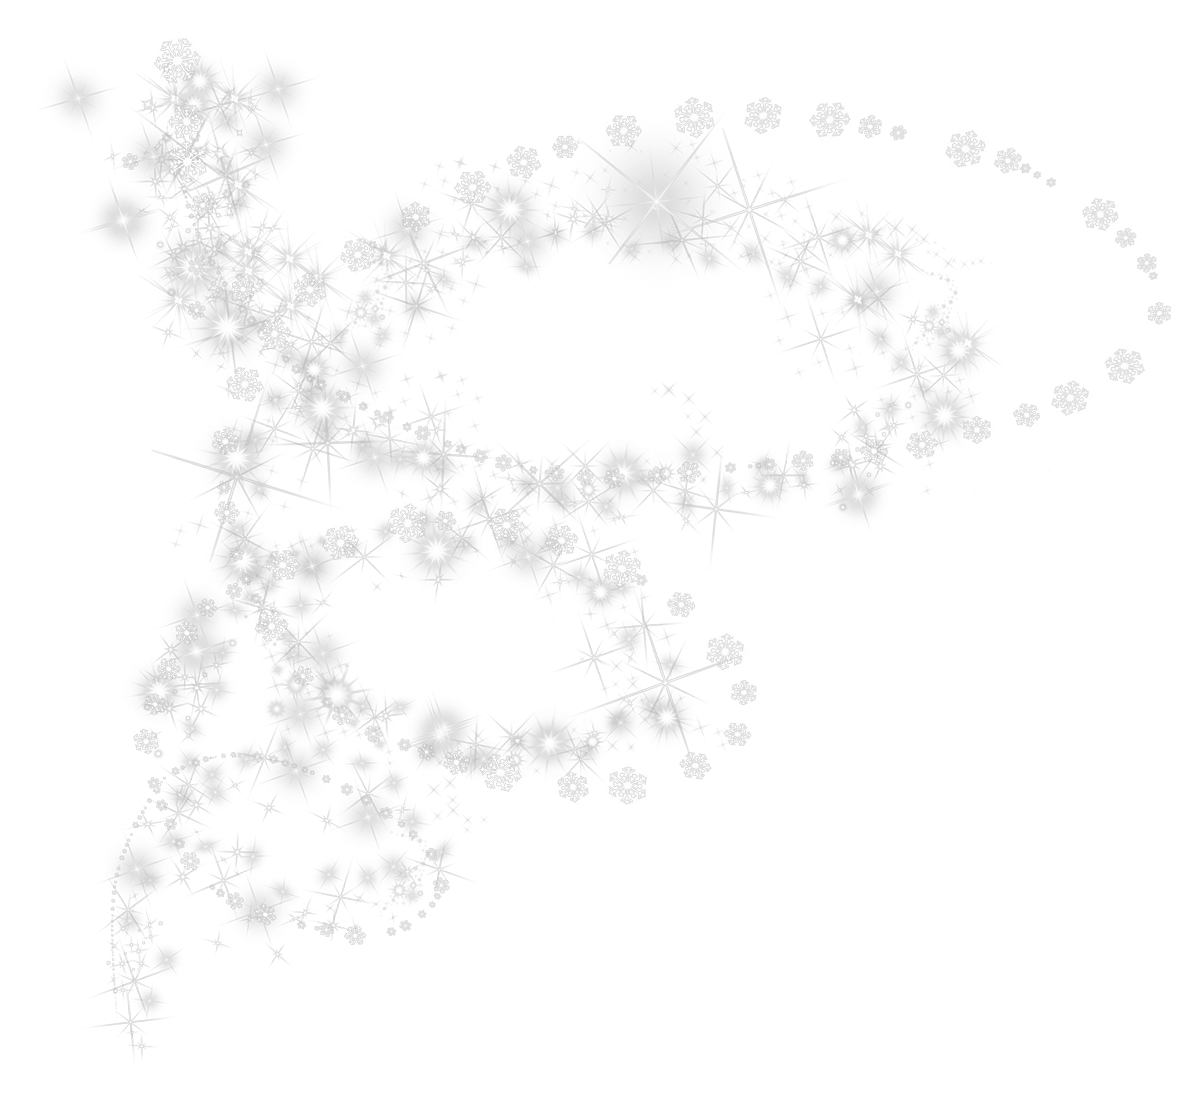 Snowflake border png transparent. Snowflakes images pluspng white